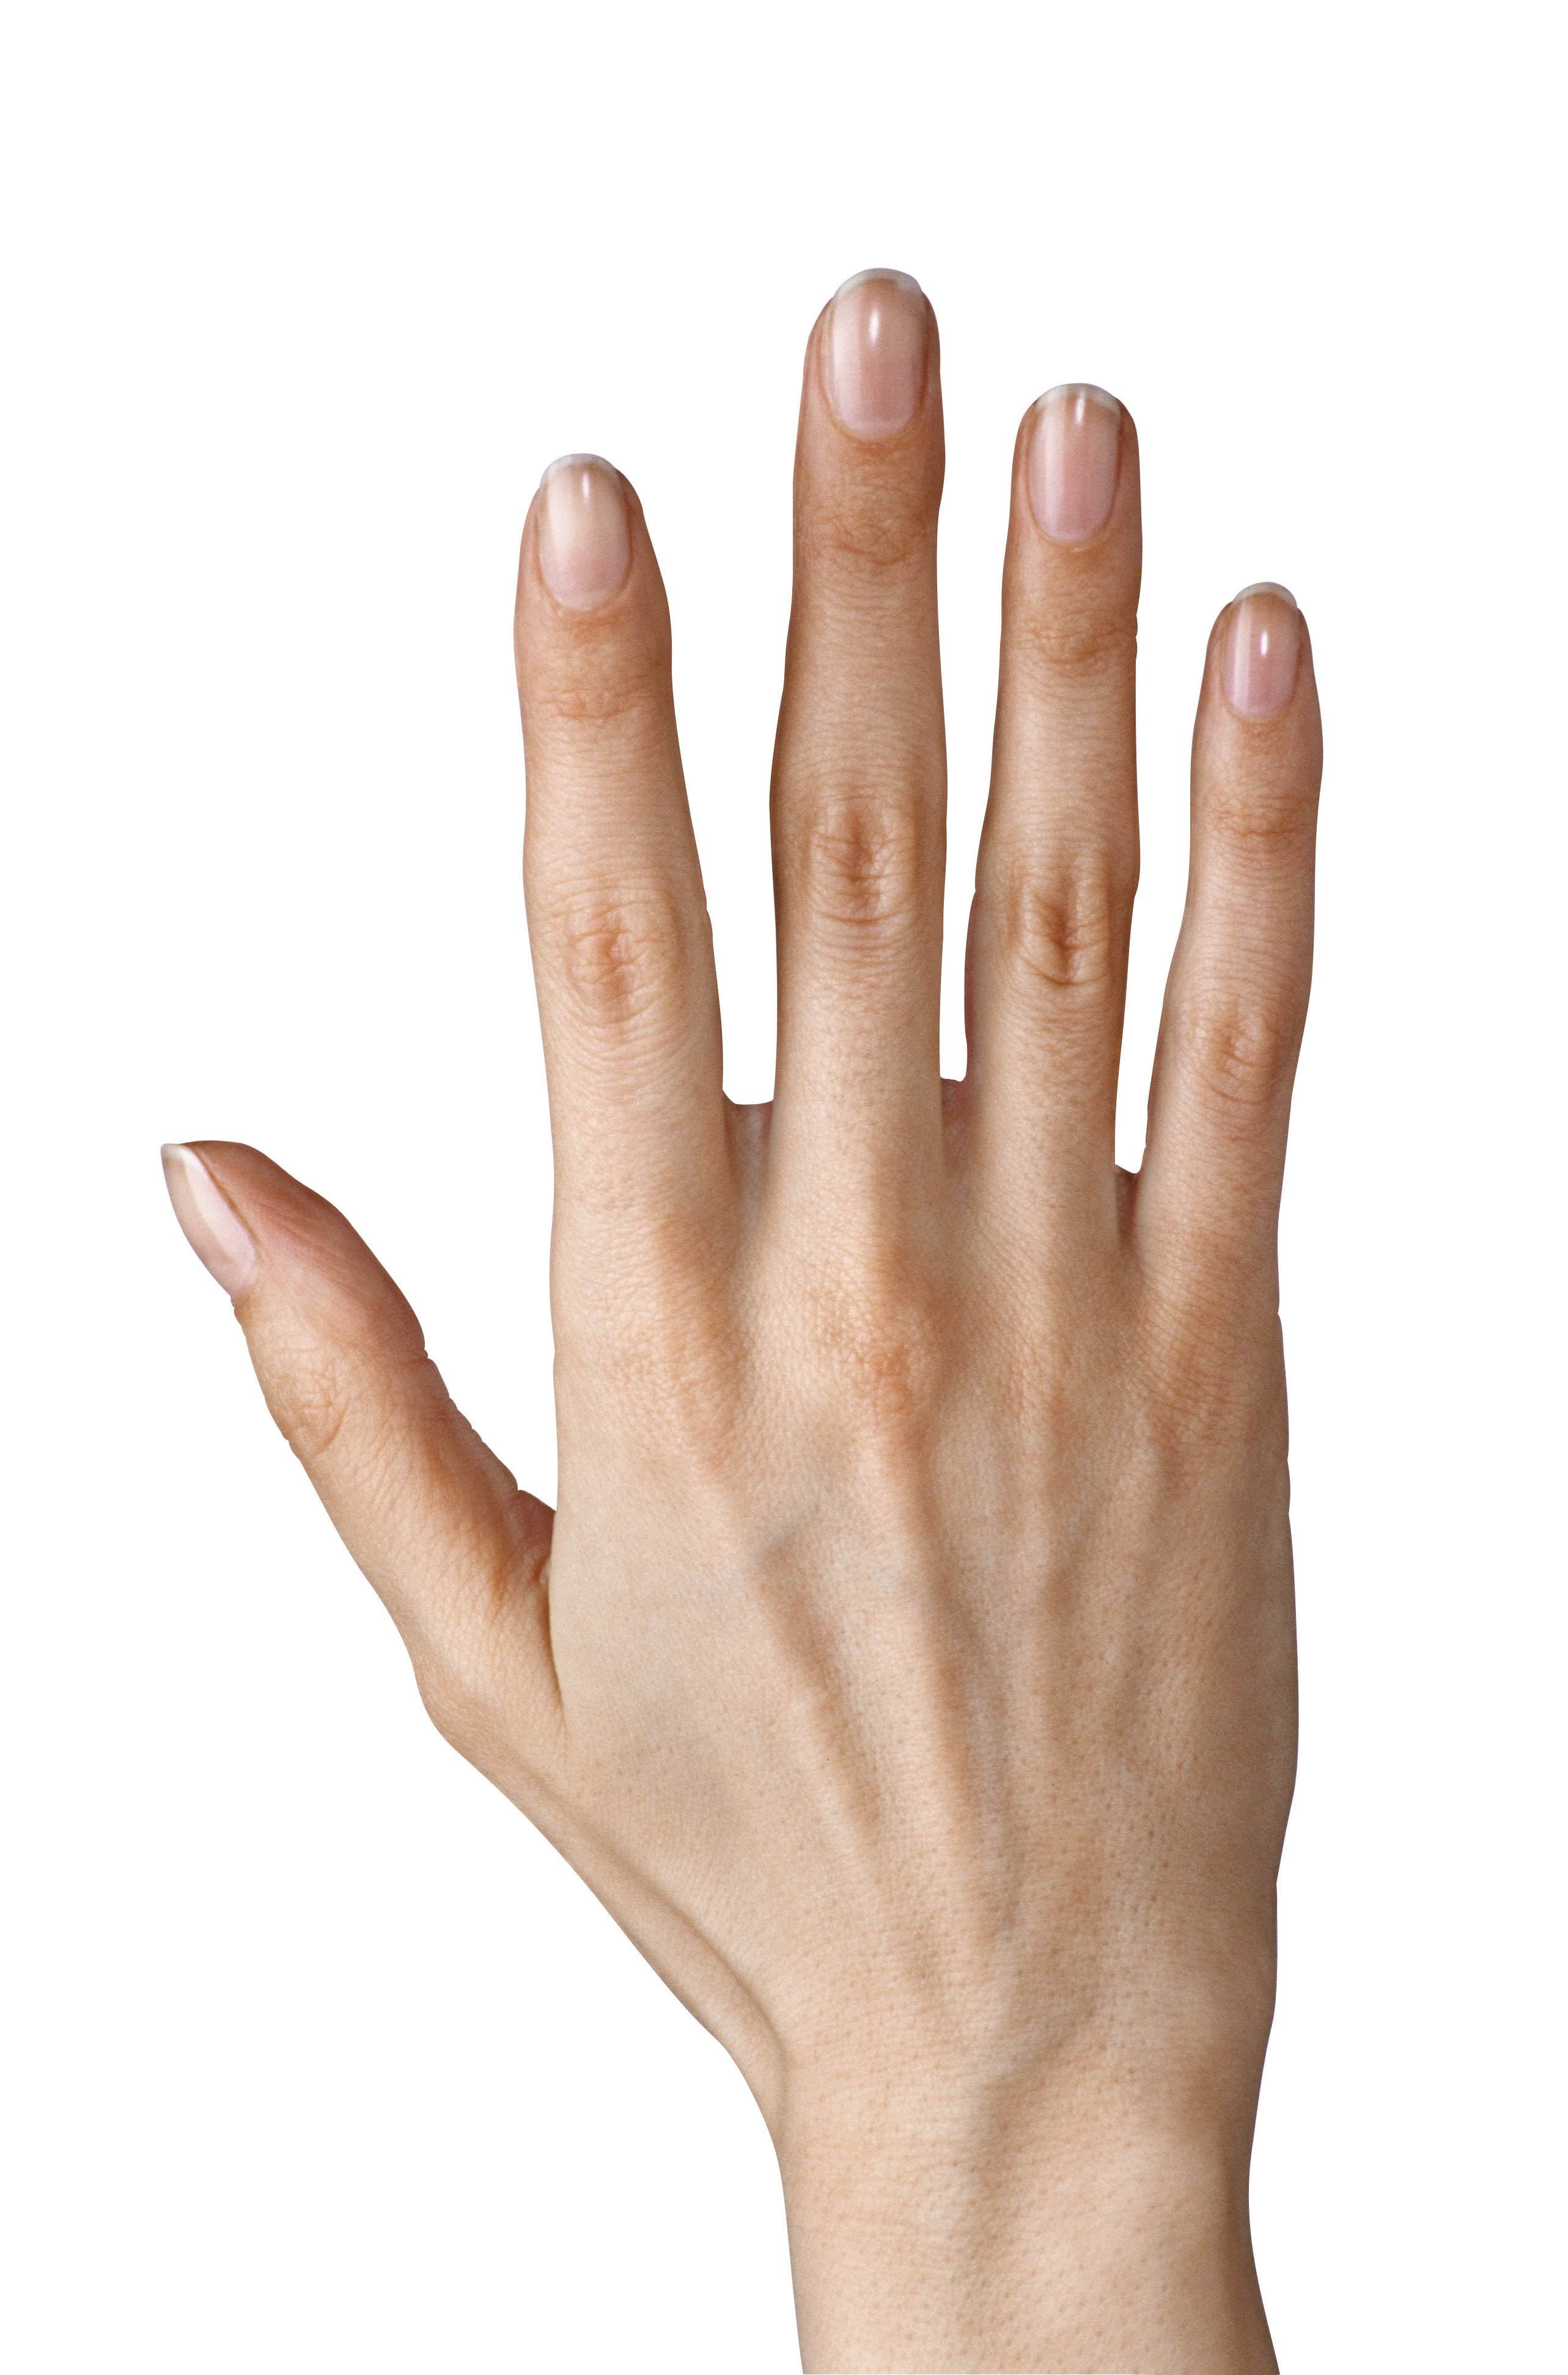 image black and white download Hand showing five png. Fingers clipart